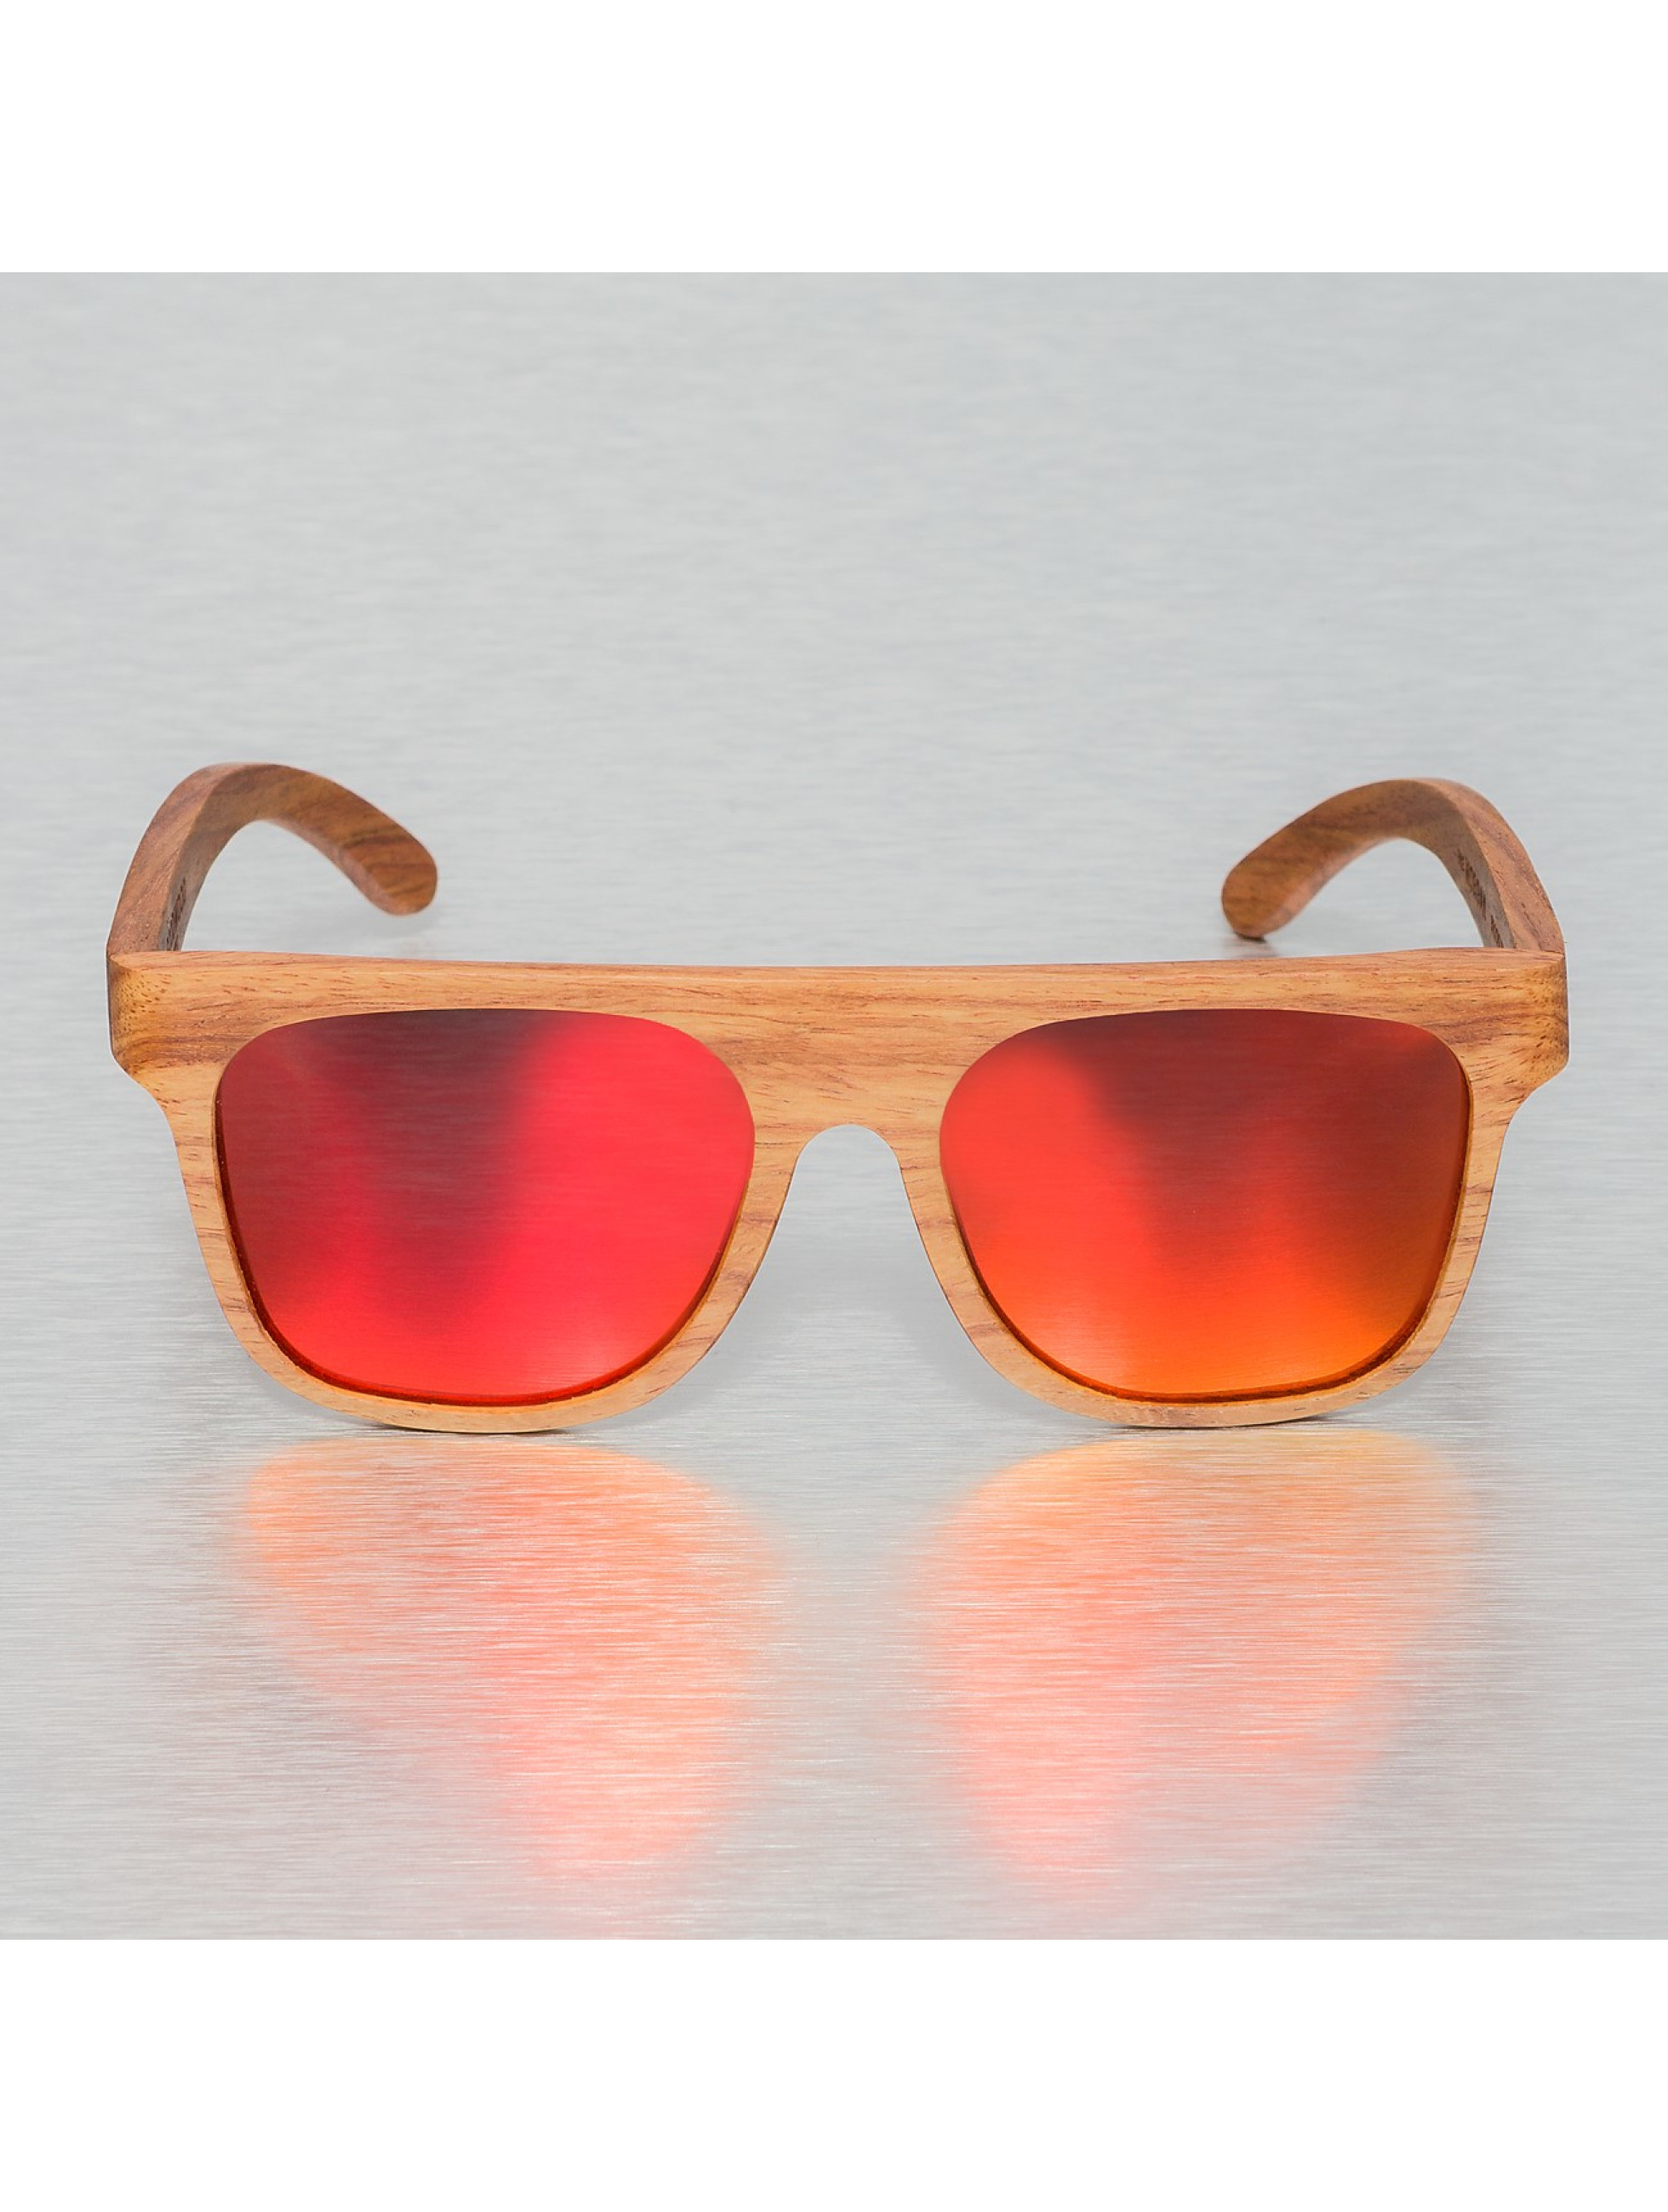 Good Wood NYC Sonnenbrille NYC Ingram braun